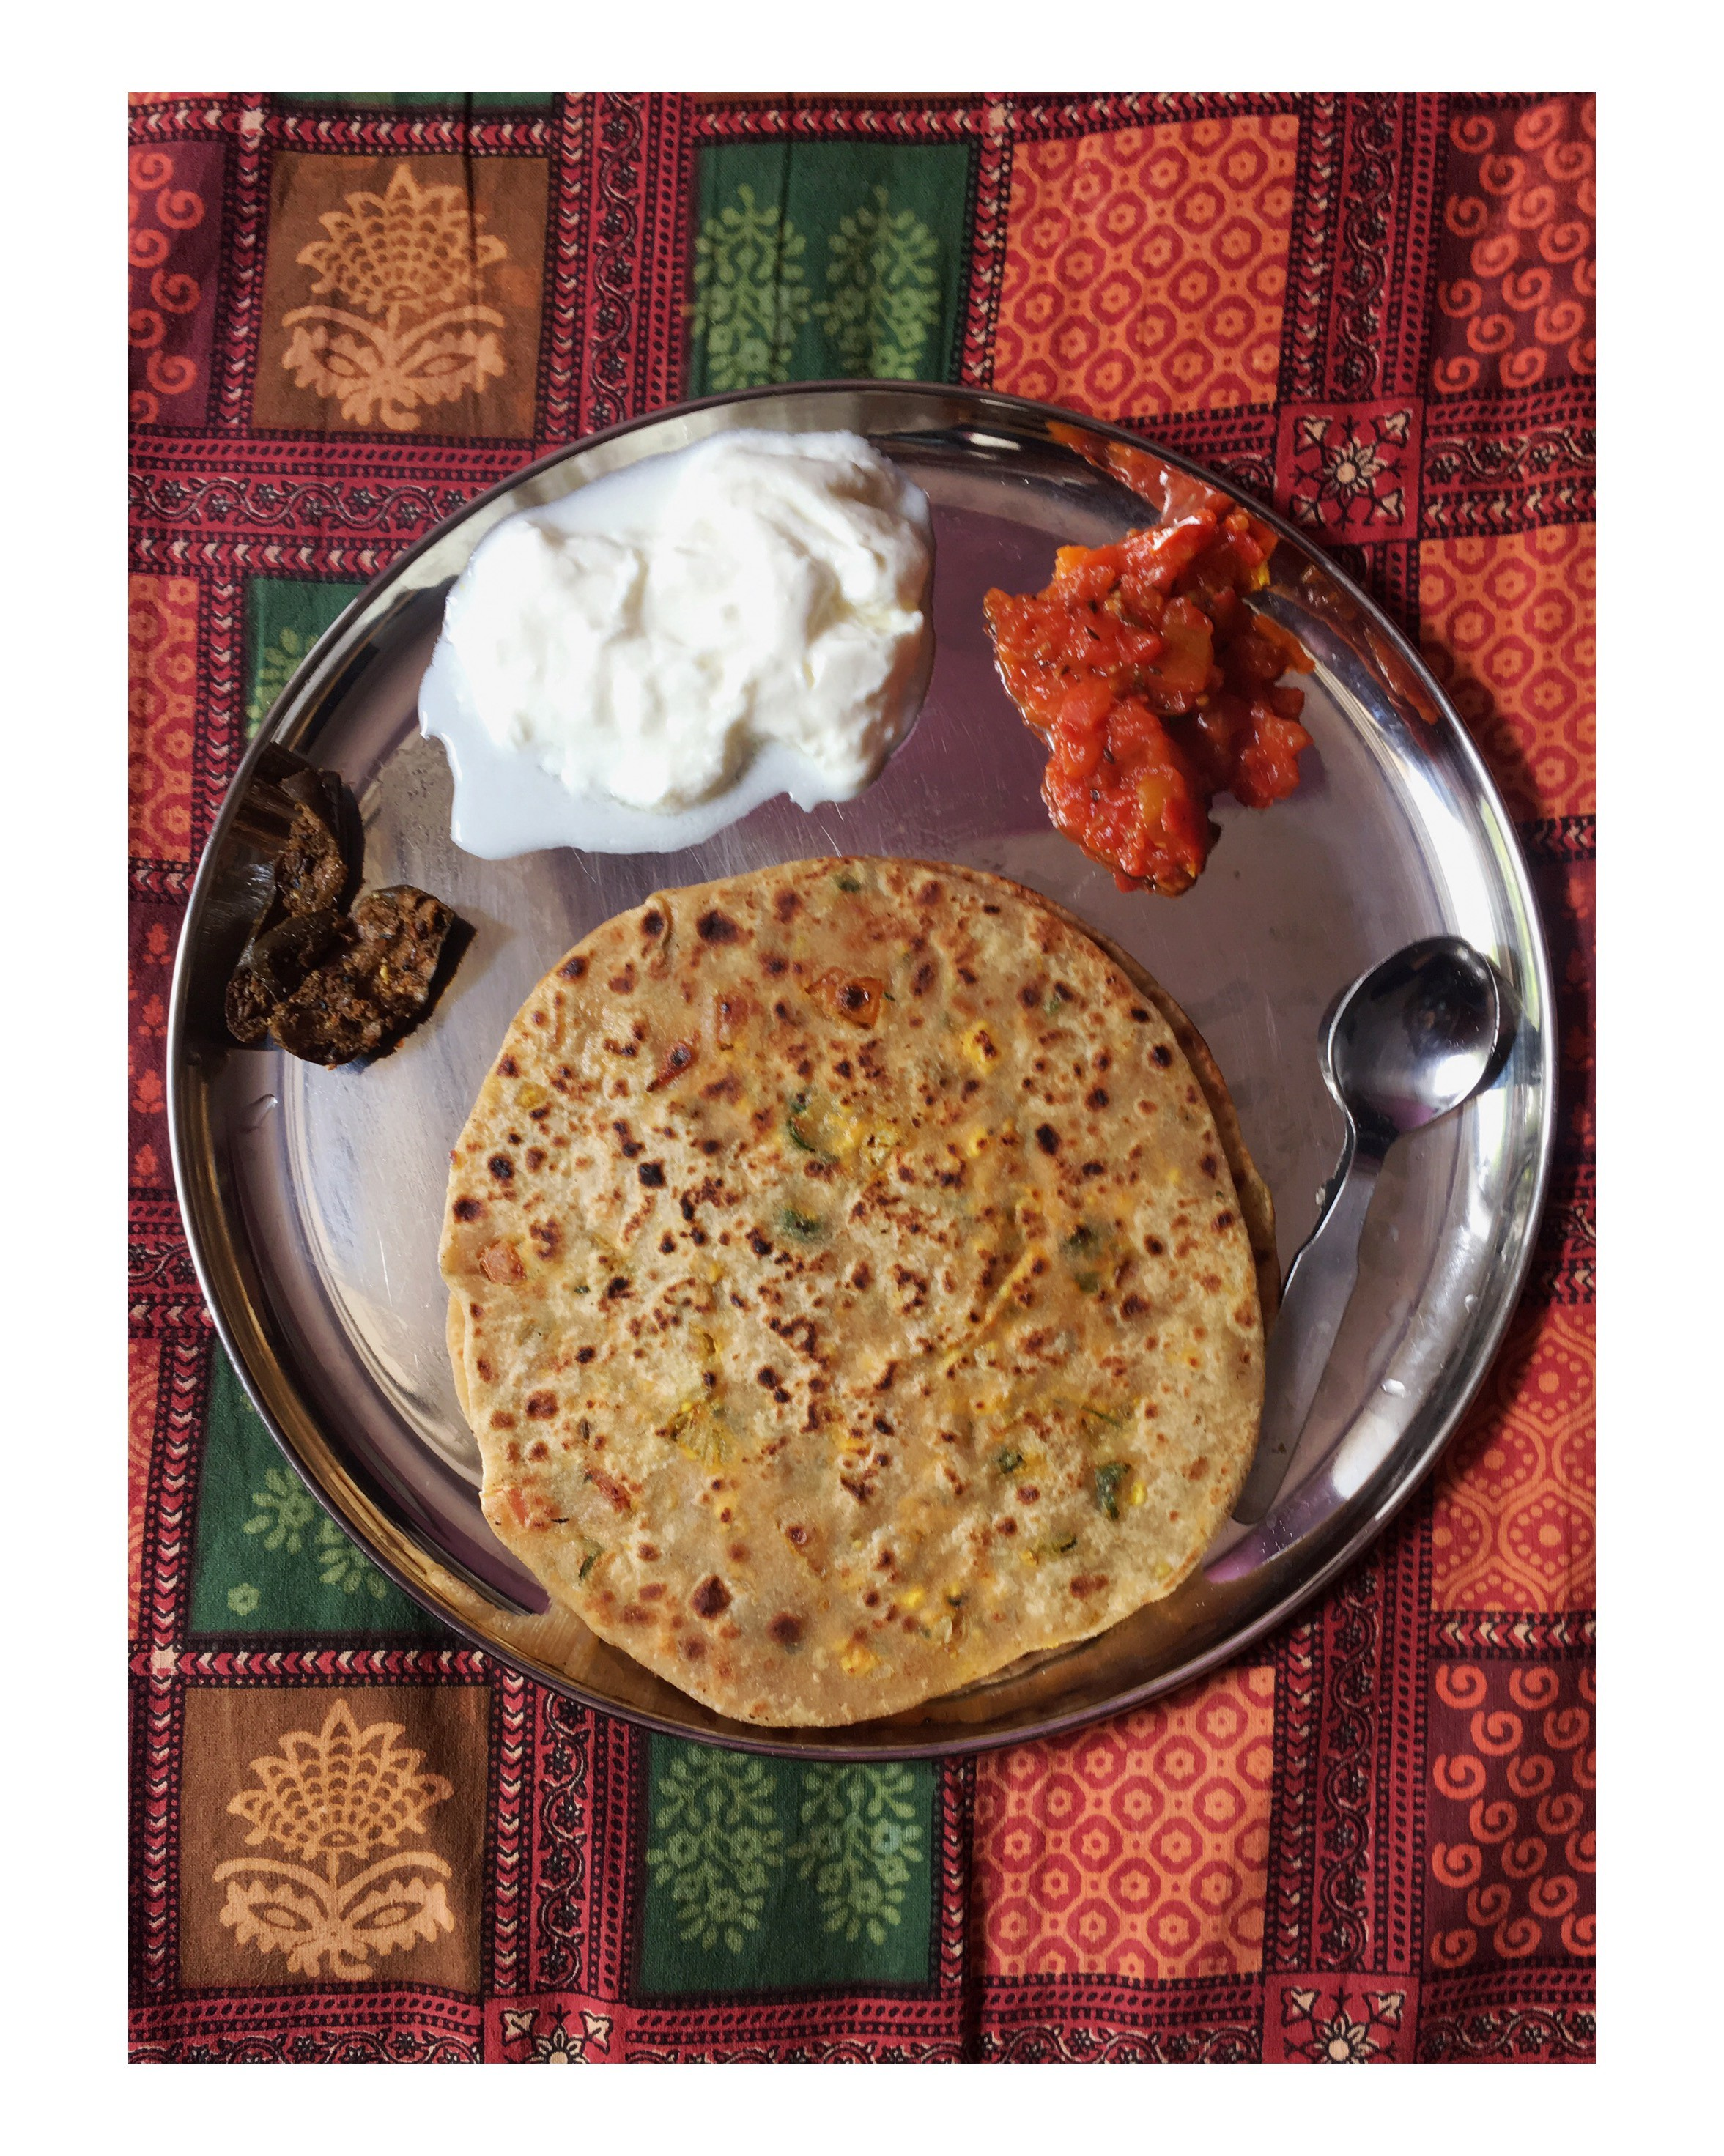 Paneer Parantha When I Have Time For Breakfast I Enjoy By Veena Shahane Foodblogbyveena Medium